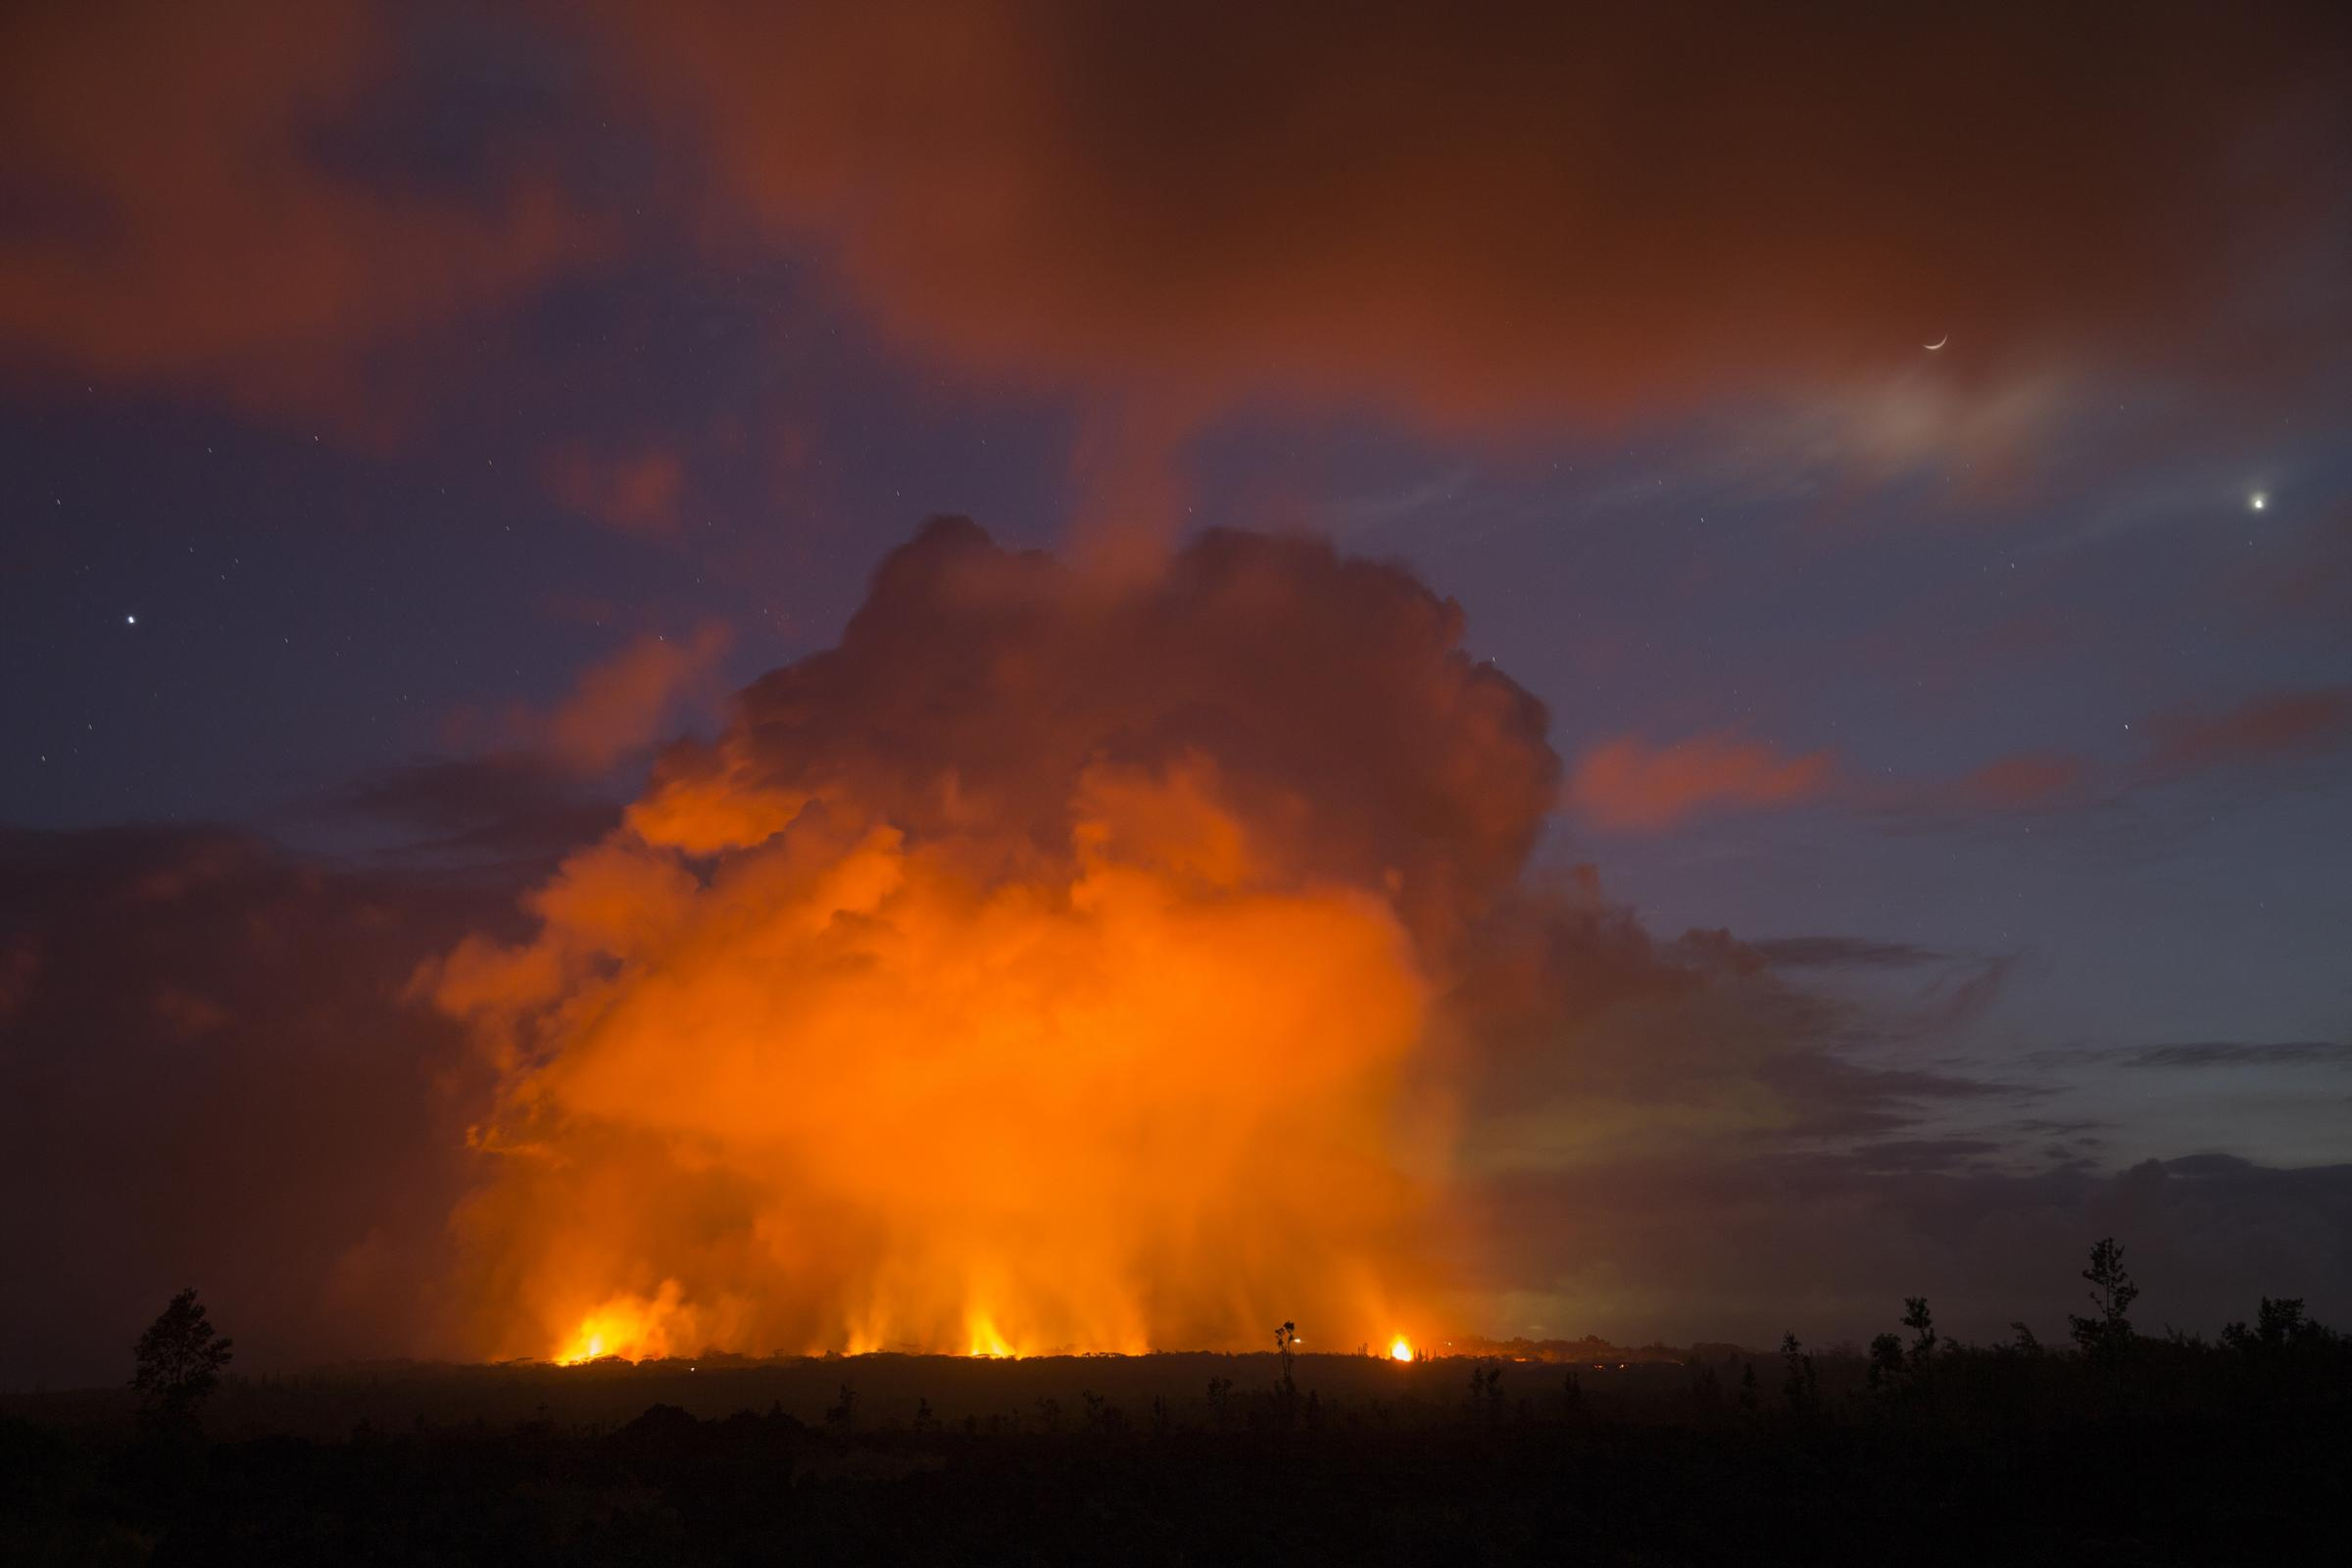 Volcanic activity from the Malama Ki and Leilani Estates neighbourhoods (AP Photo/Marco Garcia)